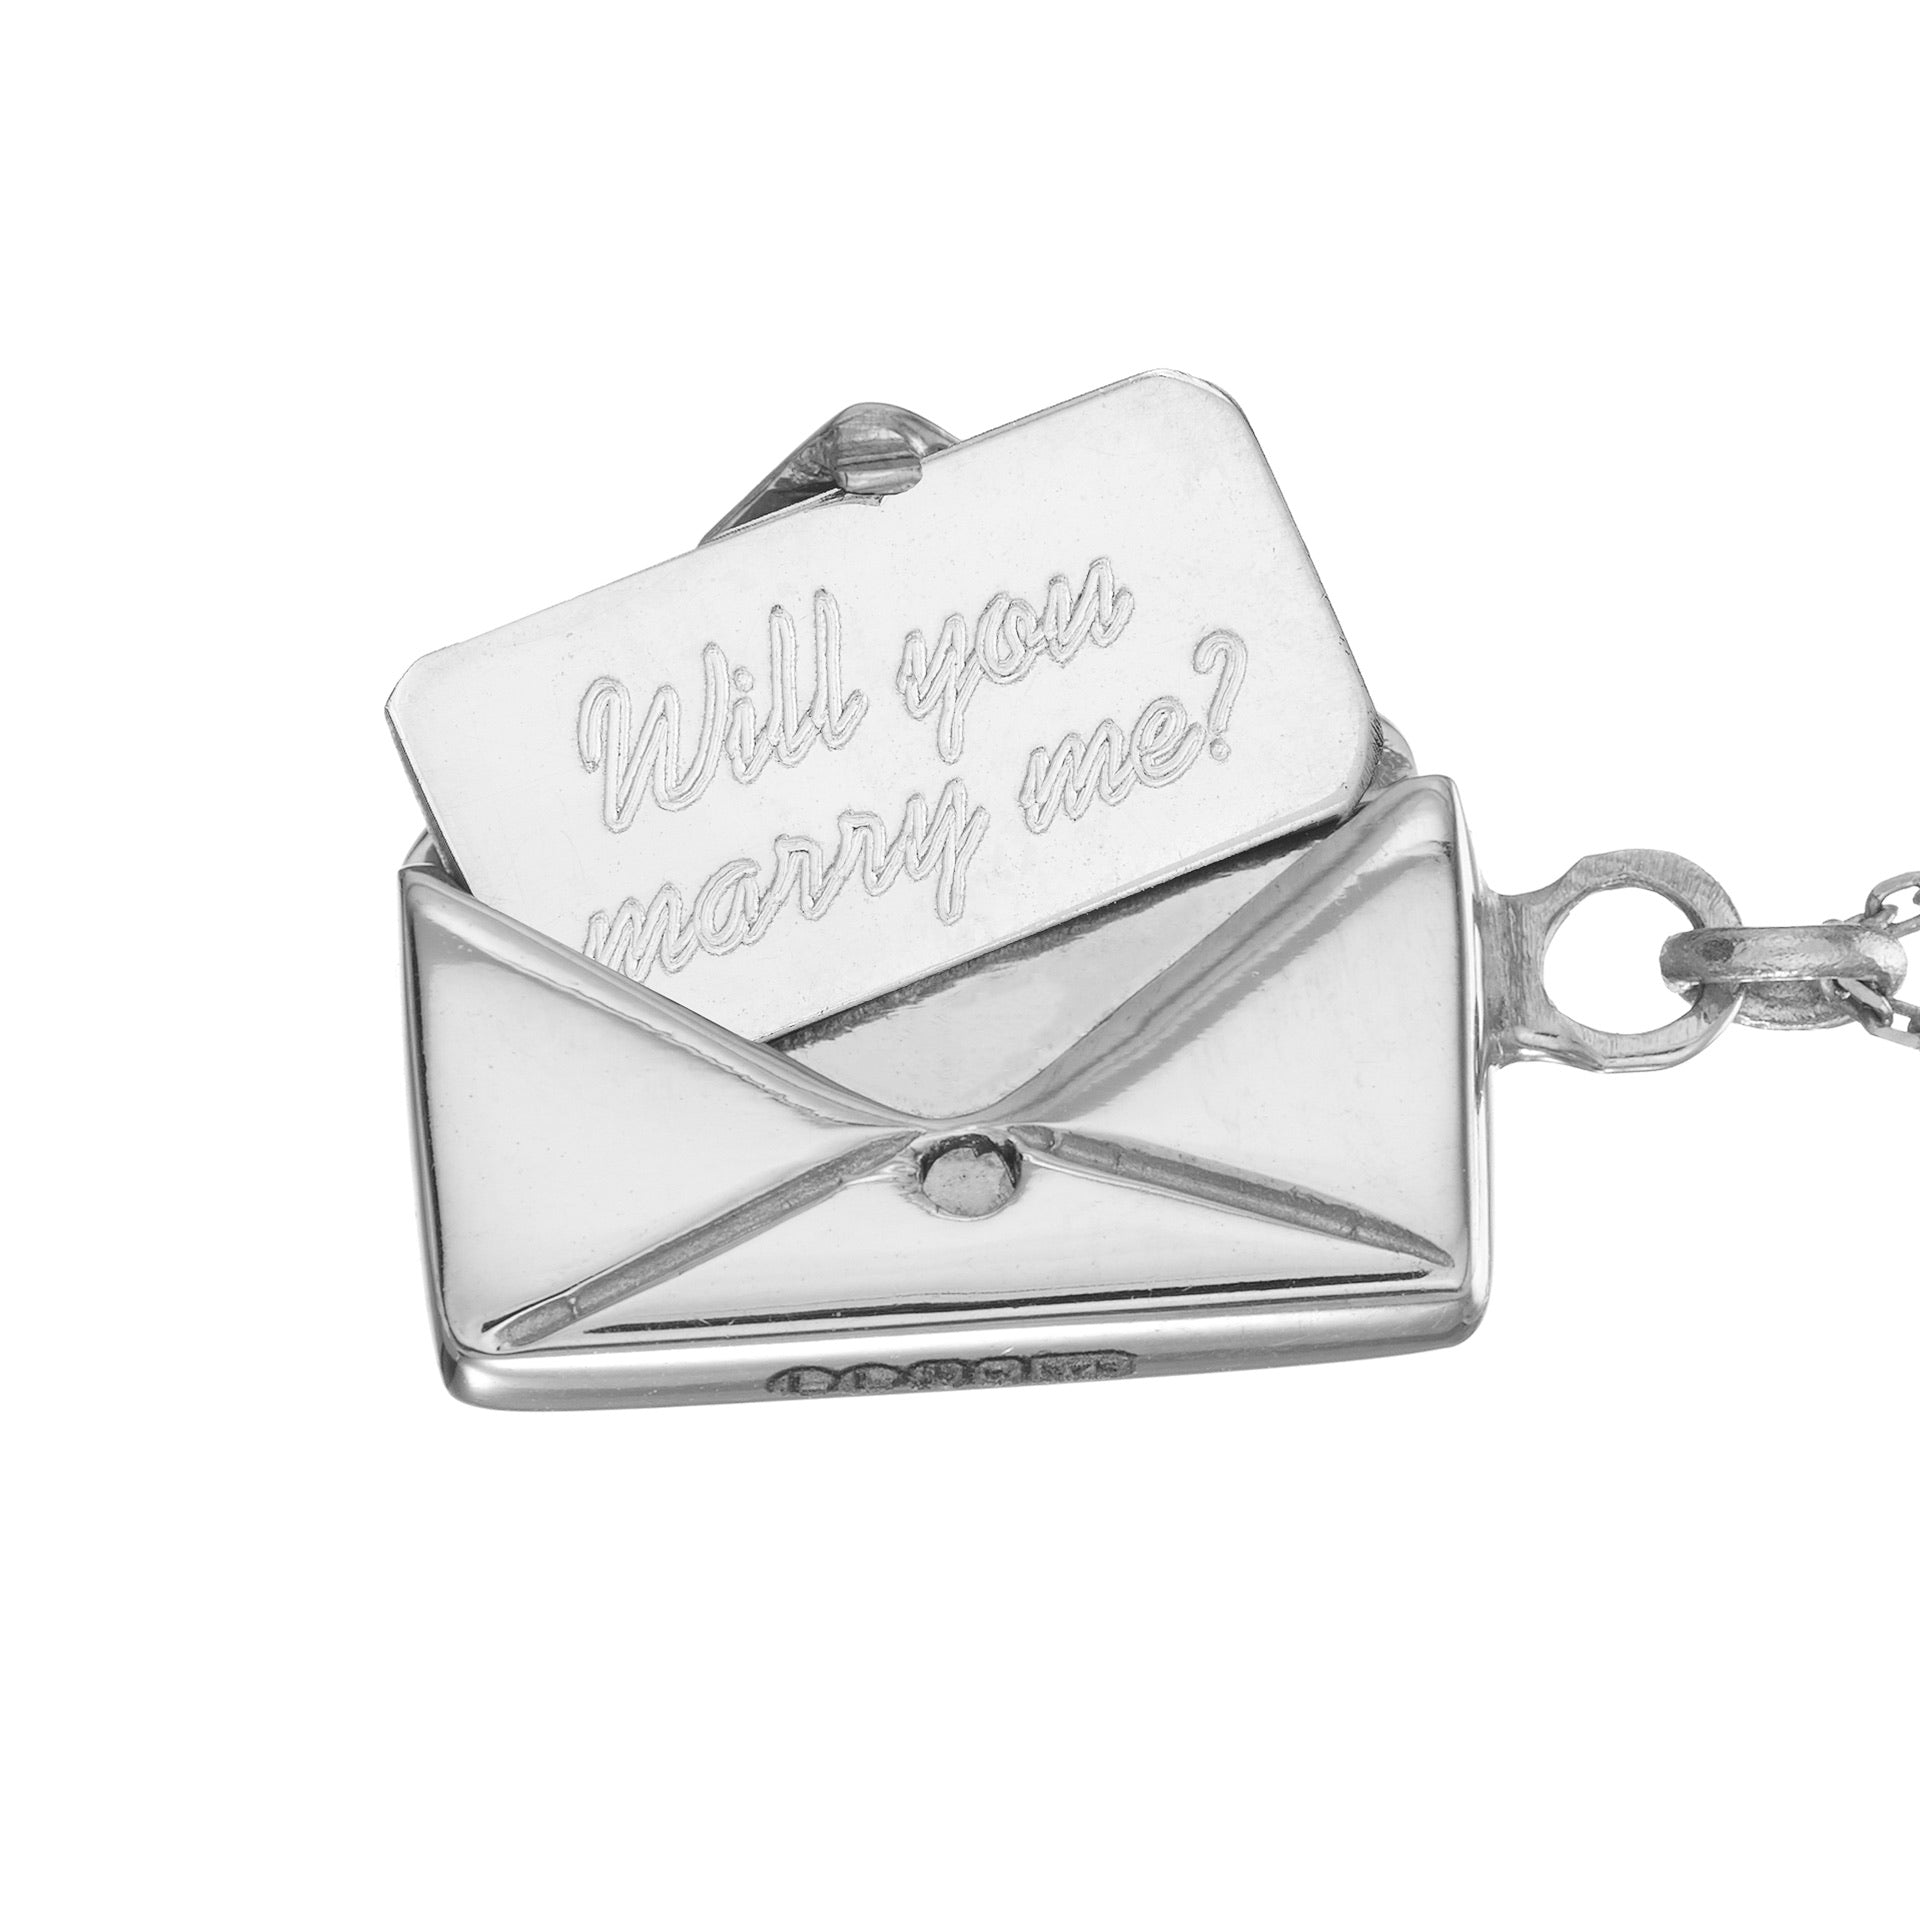 'Will you marry me?' Signature Envelope Necklace